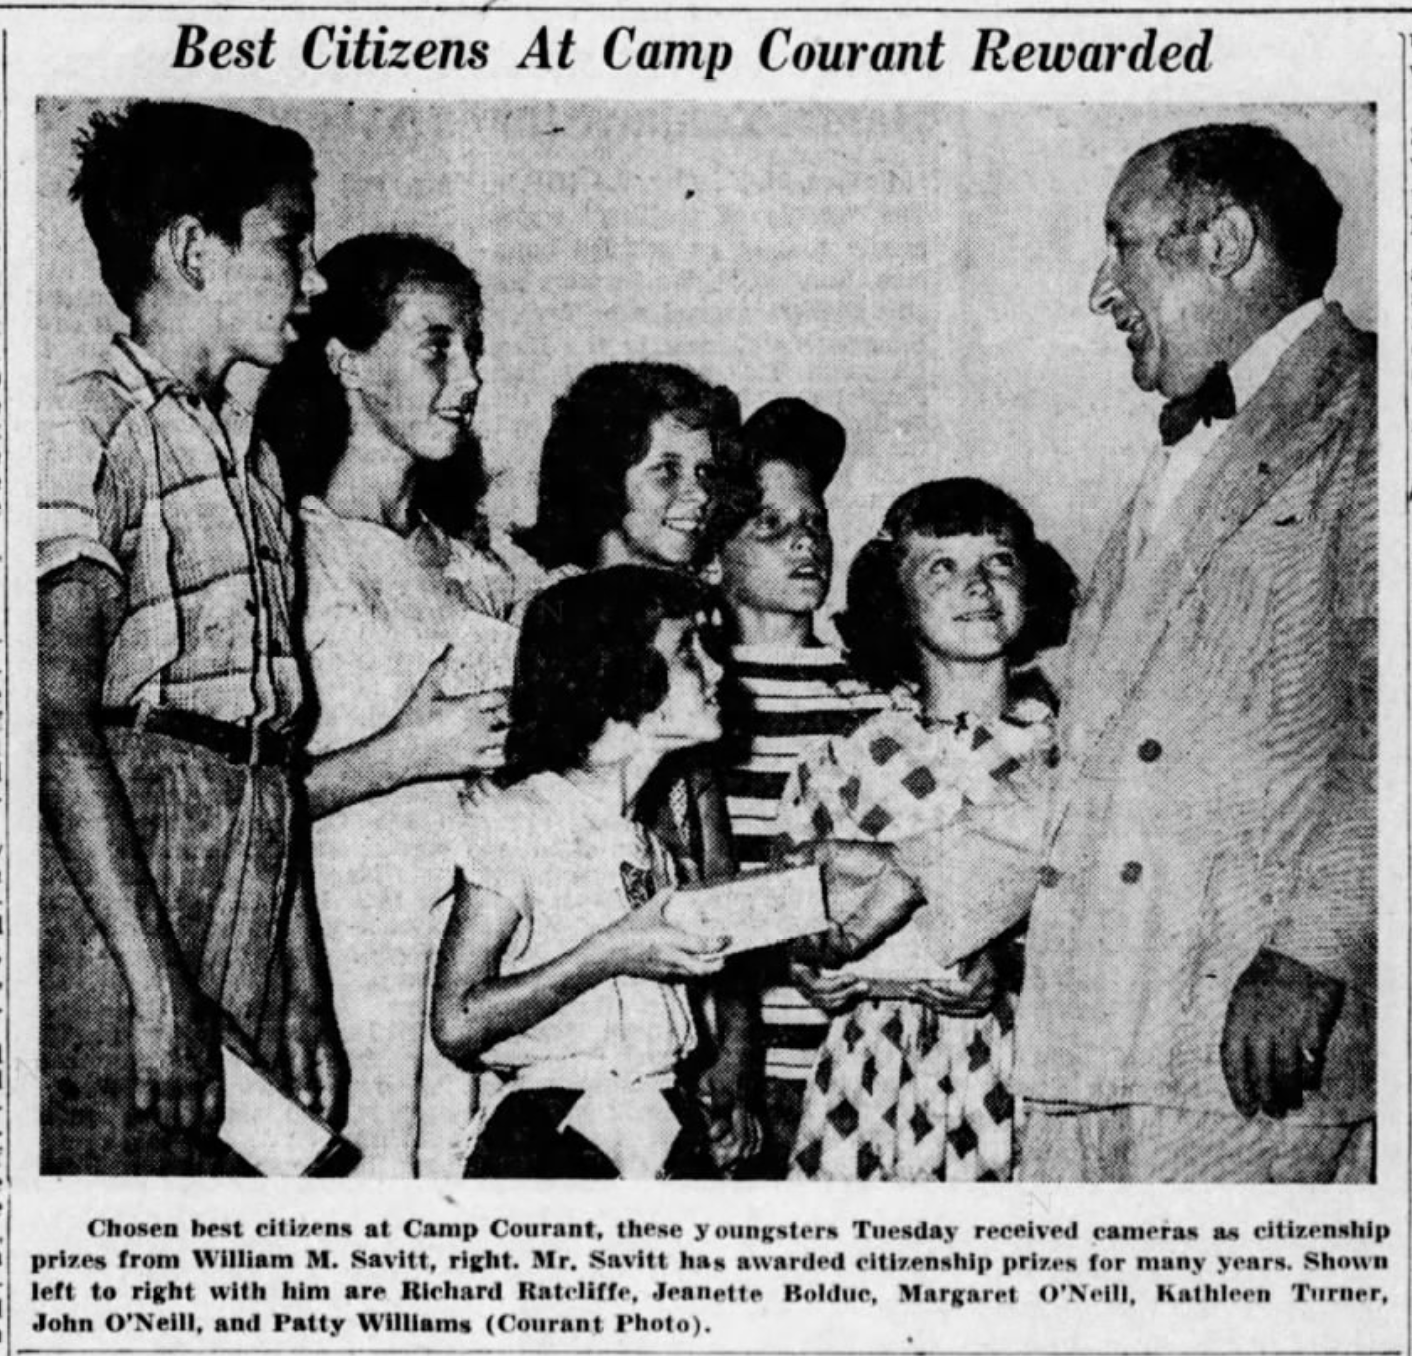 Bill Savitt donating to Camp Courant, 1949.